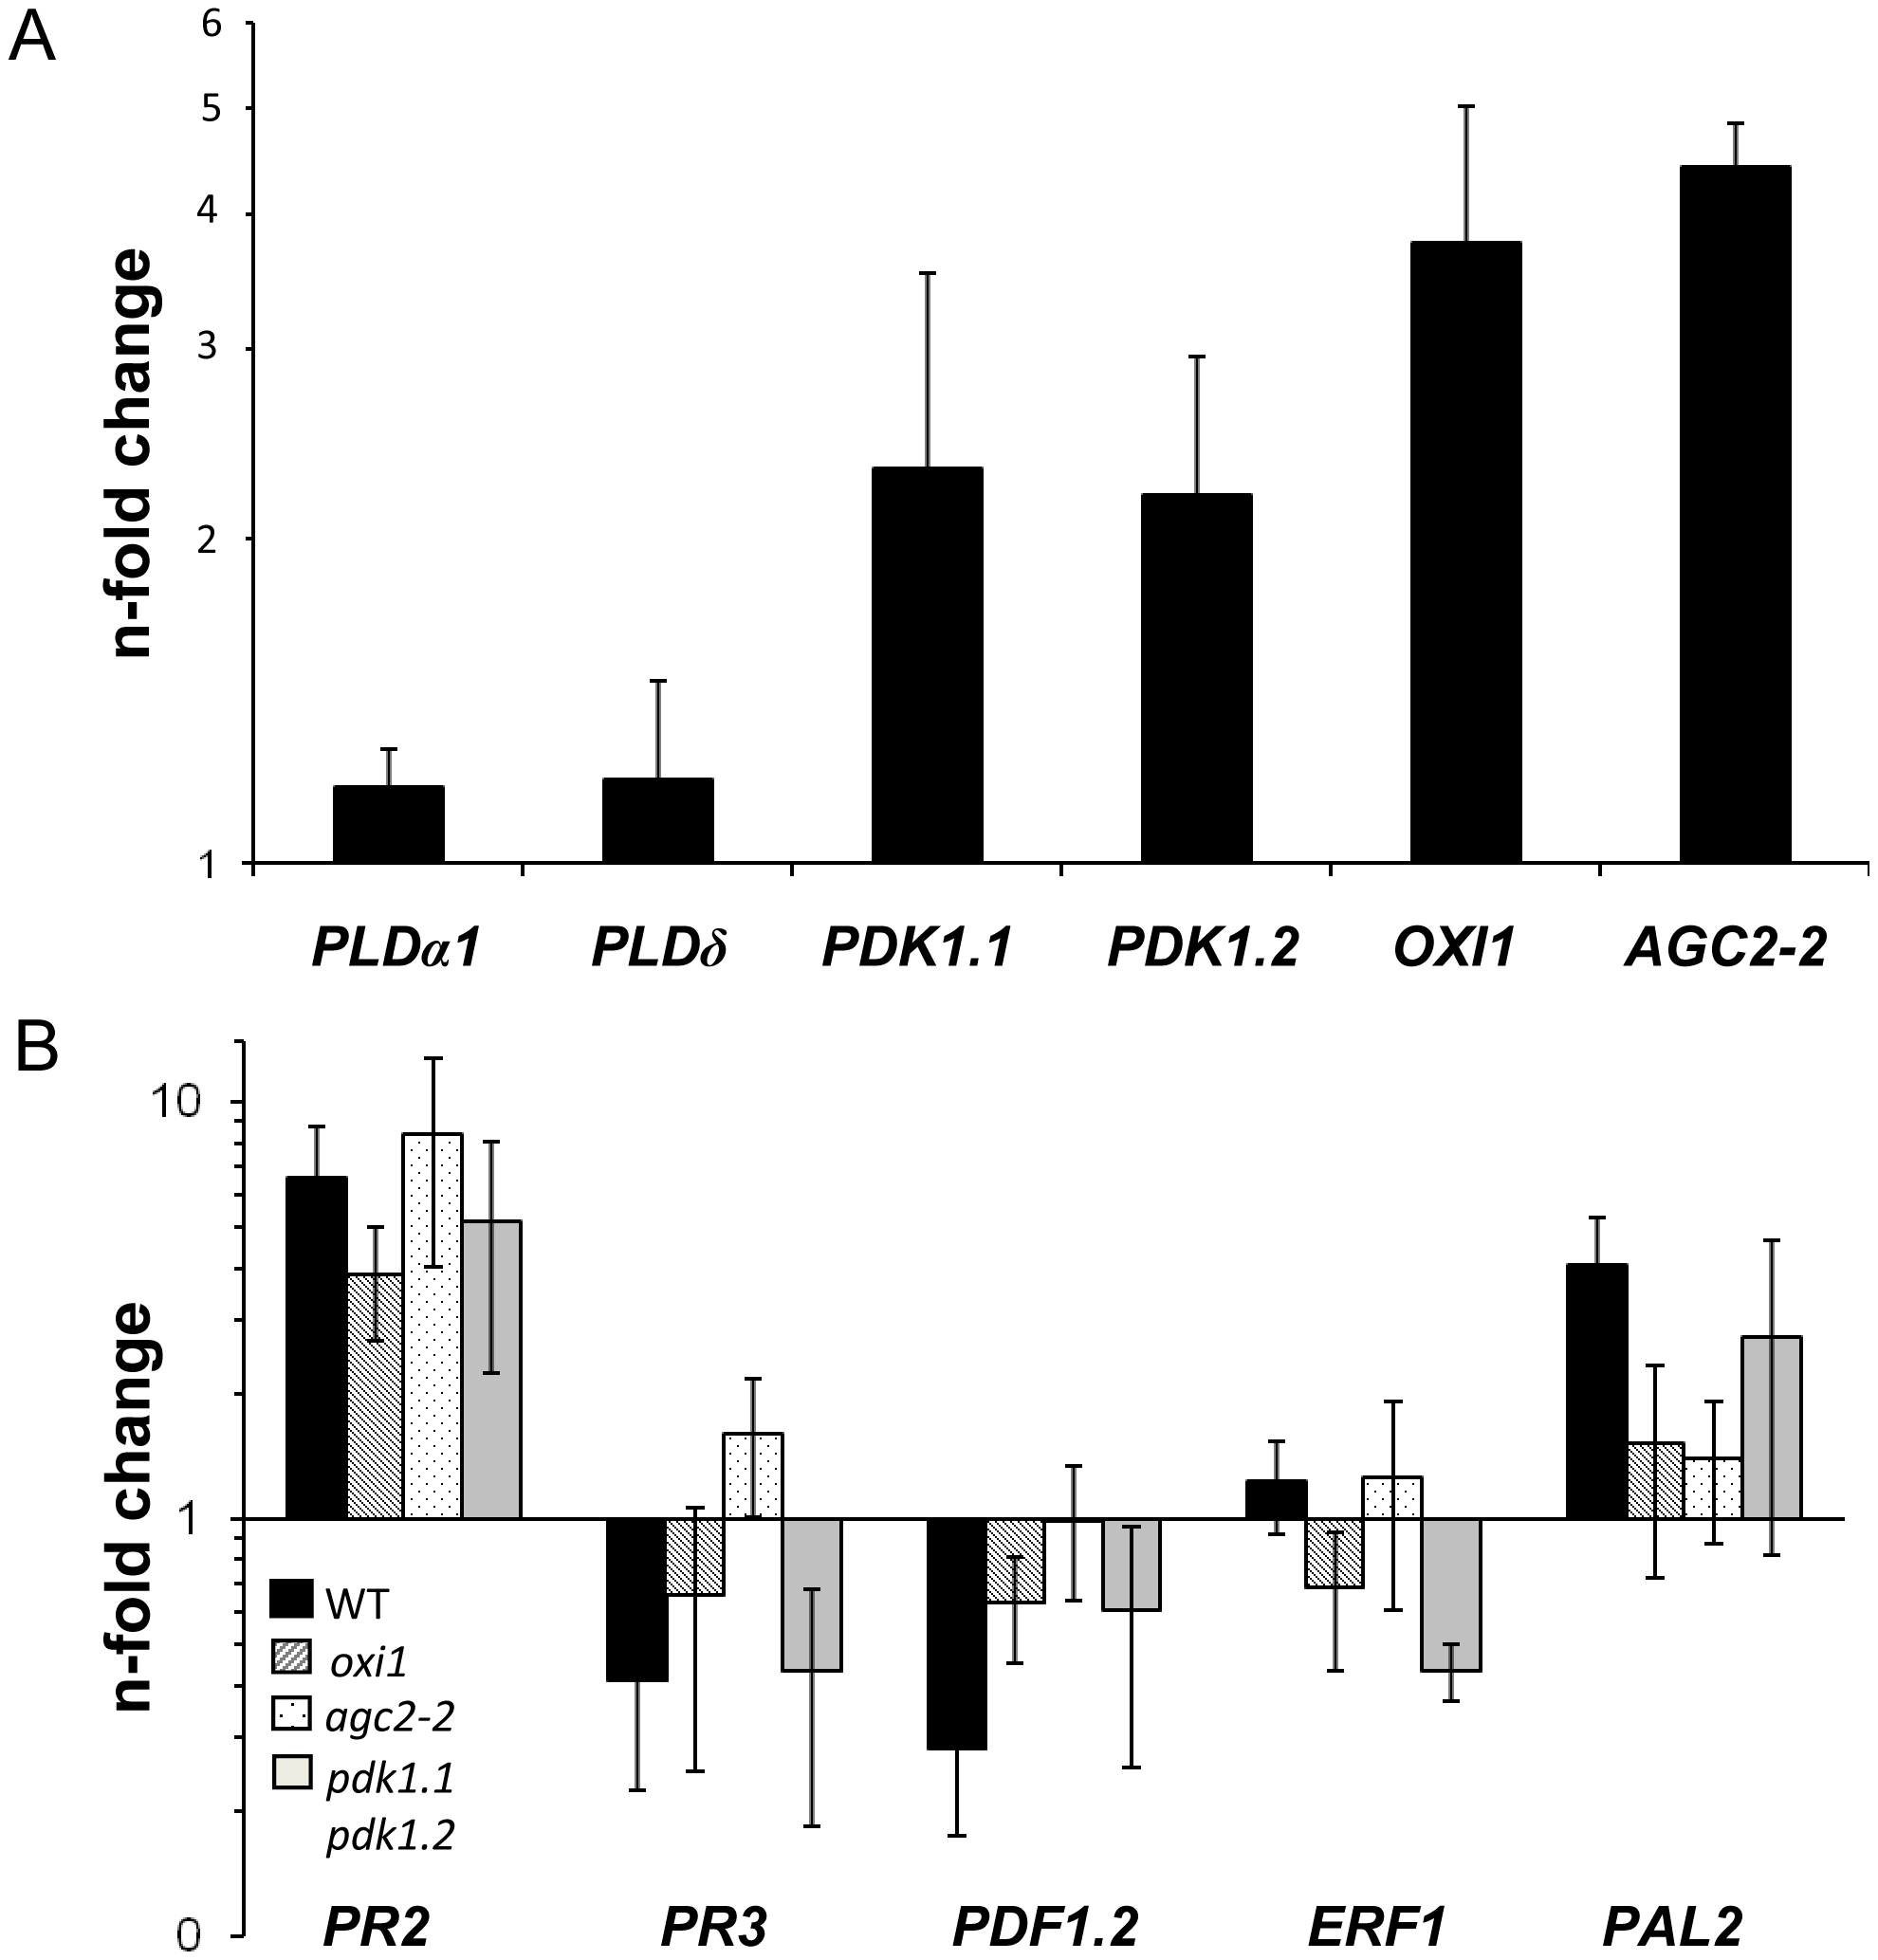 Expression levels of <i>PDK1</i>, <i>OXI1</i> and <i>AGC2-2</i> genes and defense genes in colonized wild-type or mutant roots relative to uncolonized control plants.